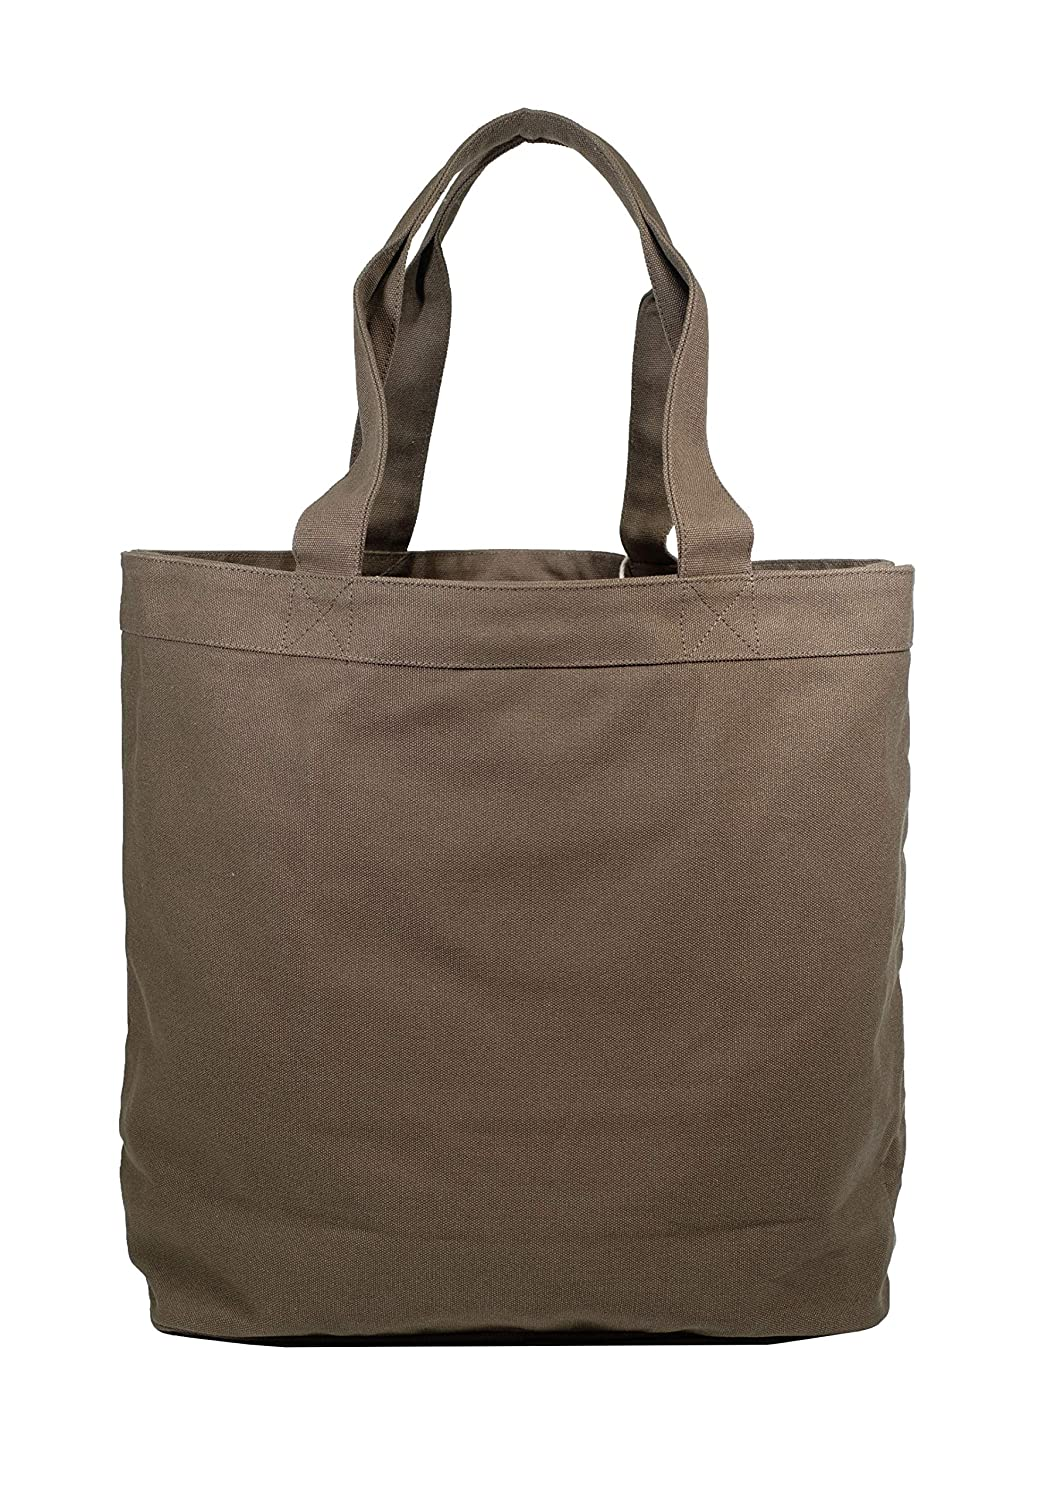 6c05fd7b8 Tote Bag for Men. Tote Bag for Women. Big Tote Bags for Women. Tote Purse. Organic  Cotton Canvas Tote Bag. Shoulder Tote Bag. Work Tote. Weekend tote.